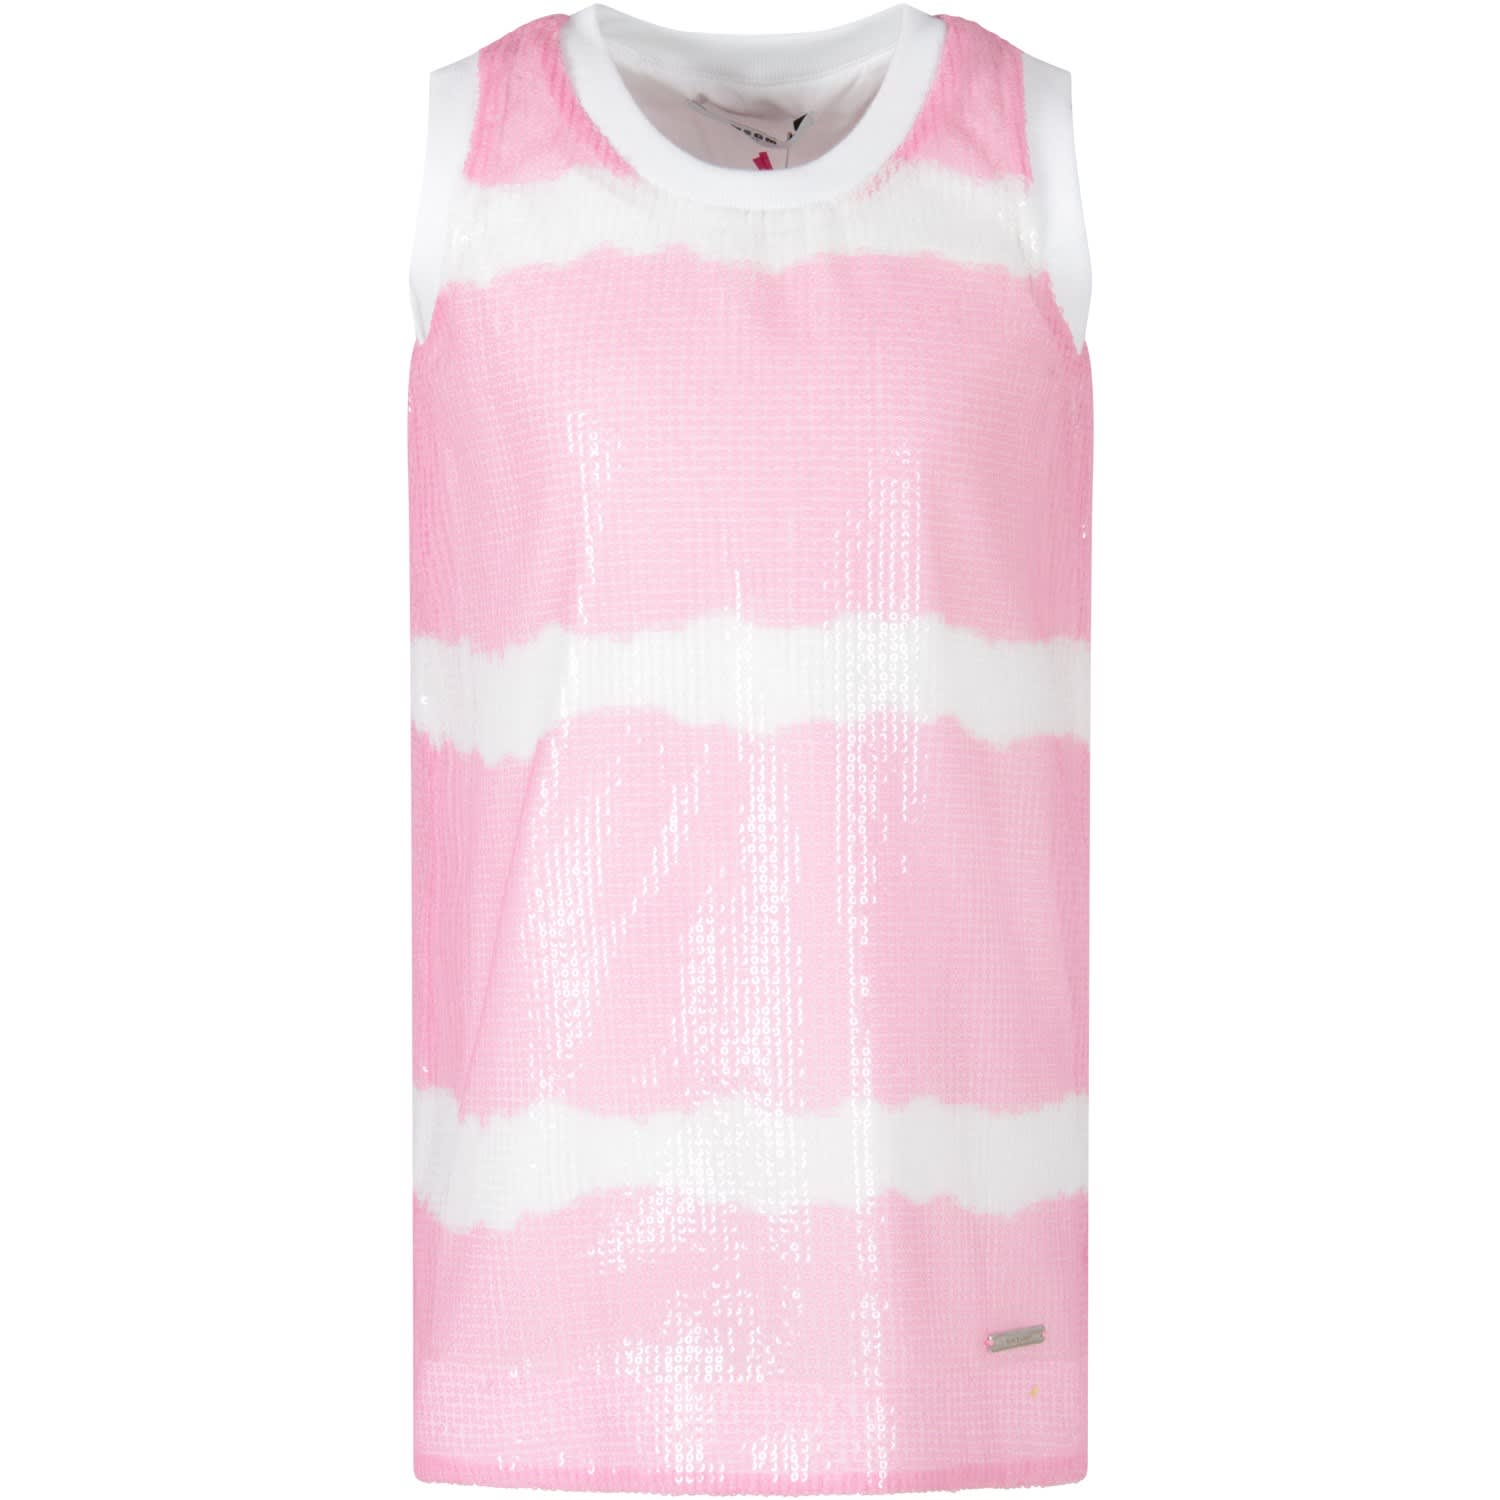 Buy MSGM Sequined Dress In Pink And White For Girl online, shop MSGM with free shipping